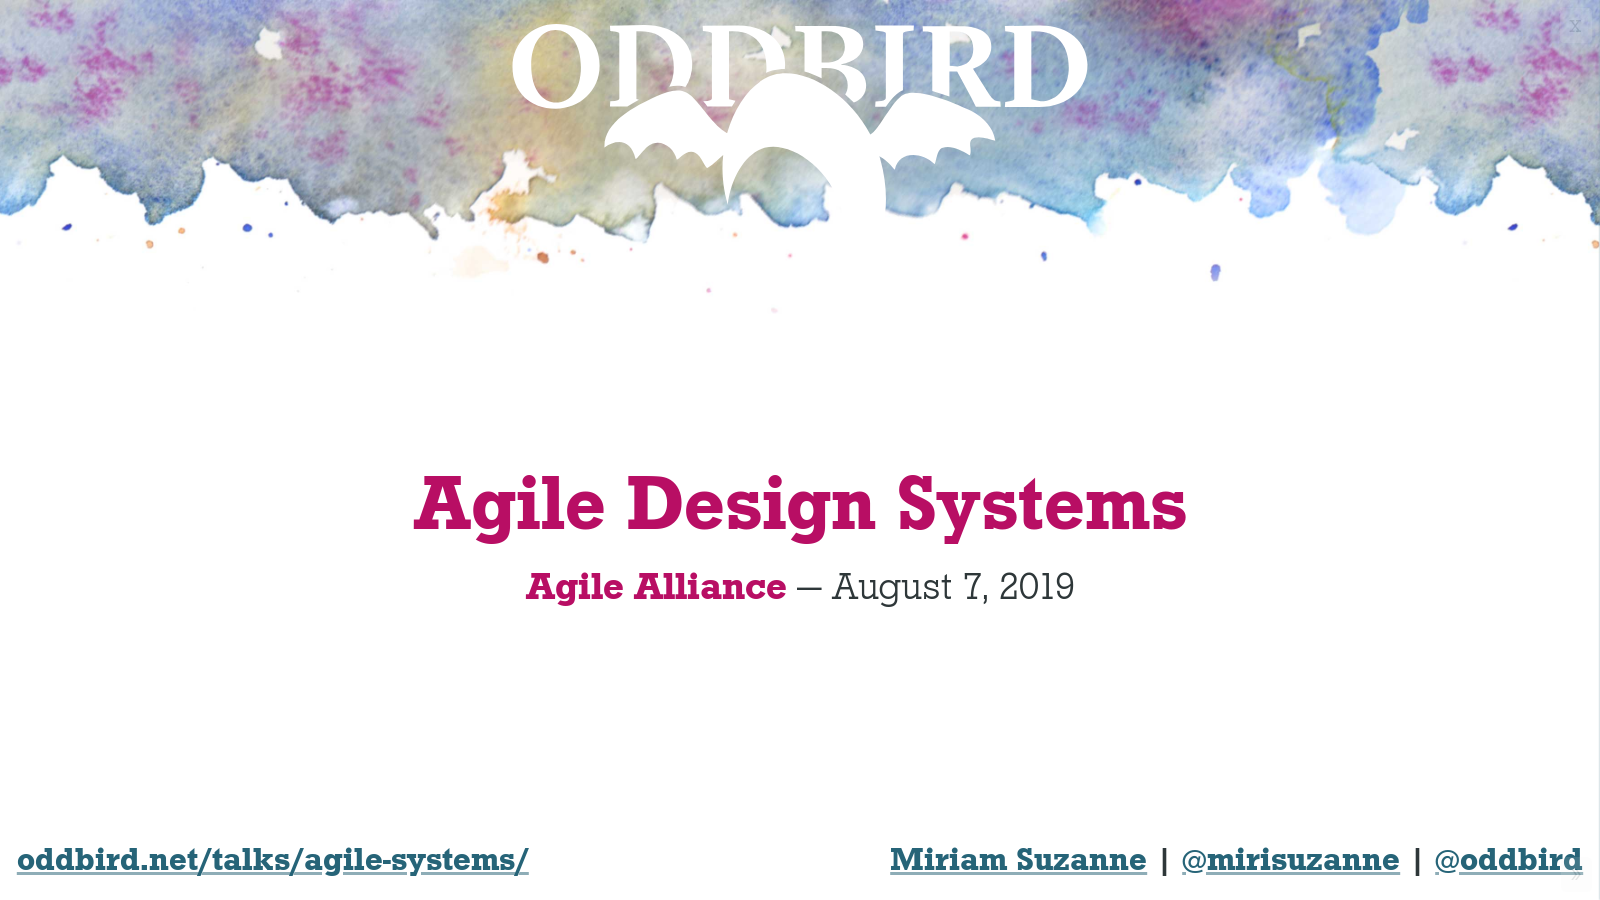 Agile Design Systems